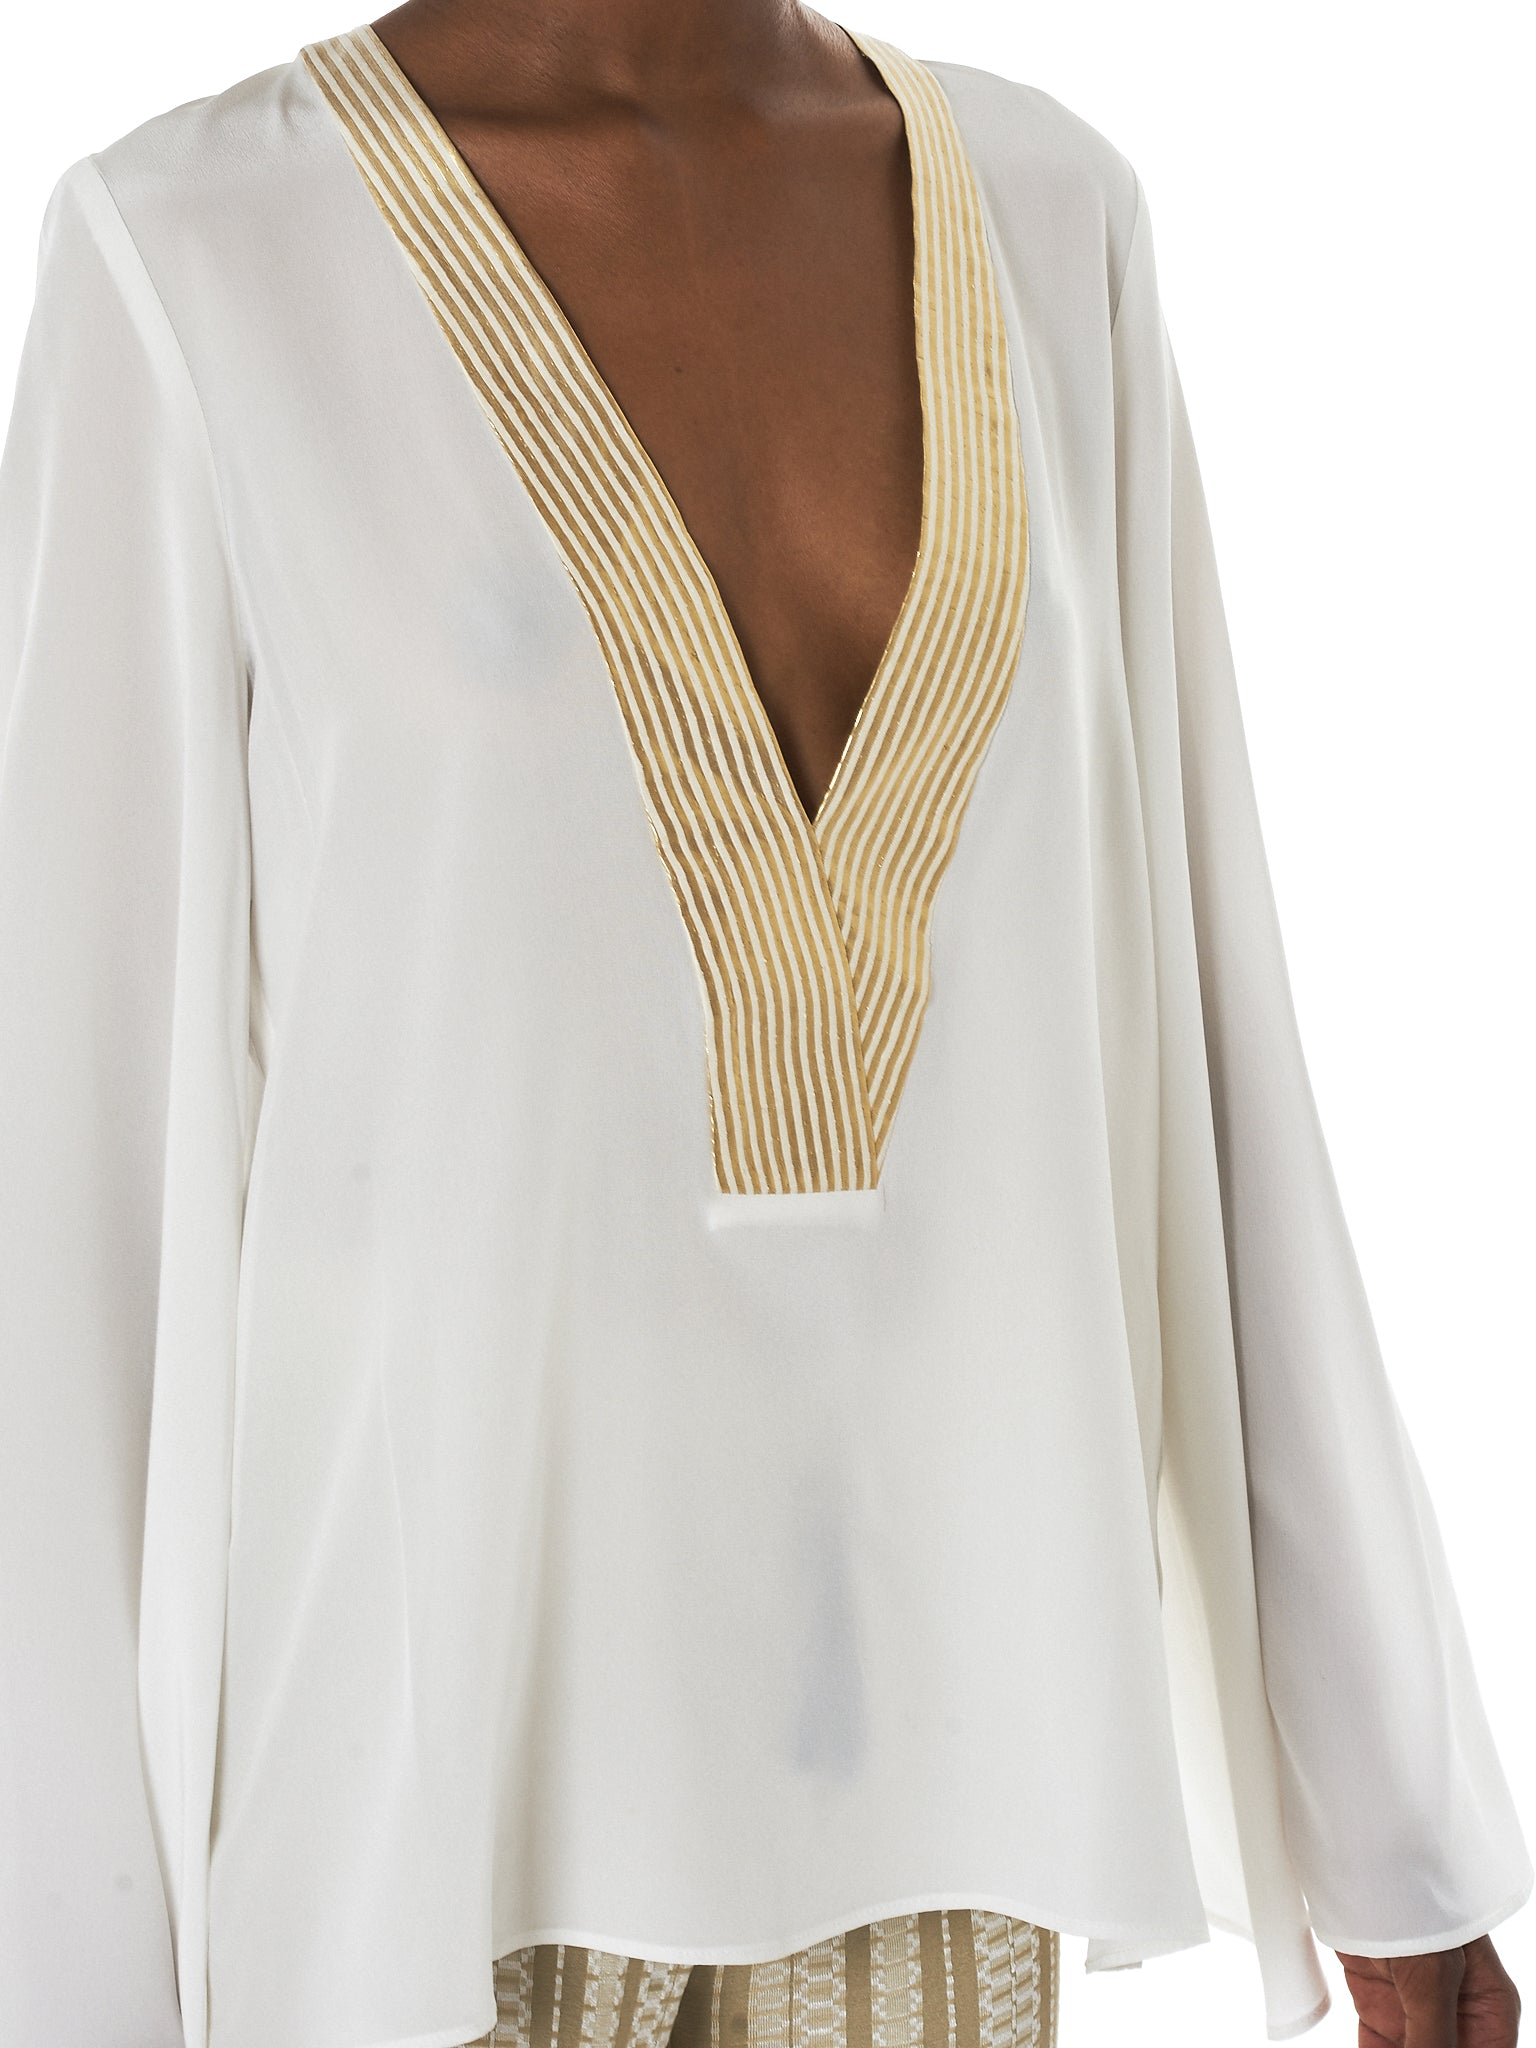 Zeus + Dione Gold Striped Blouse - Hlorenzo Detail 1